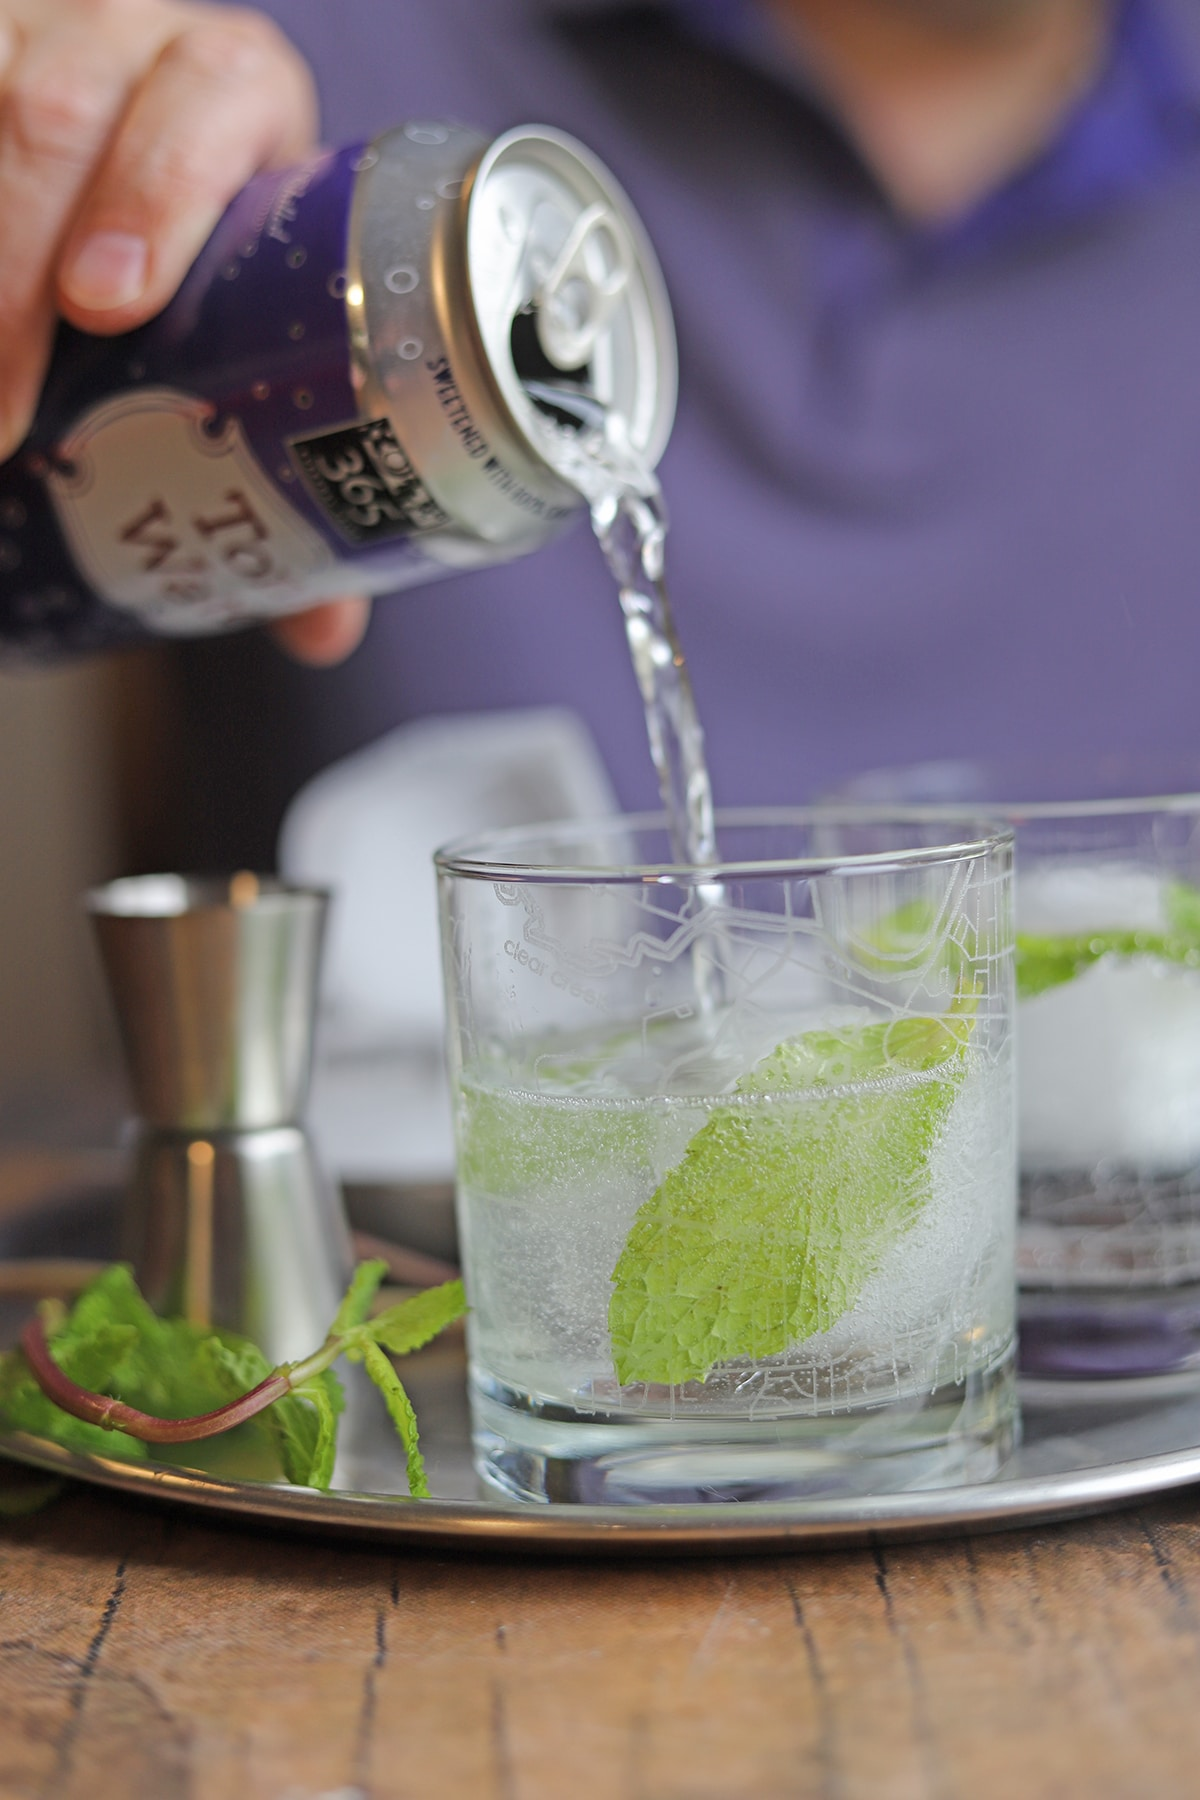 Tonic being poured into G&T.